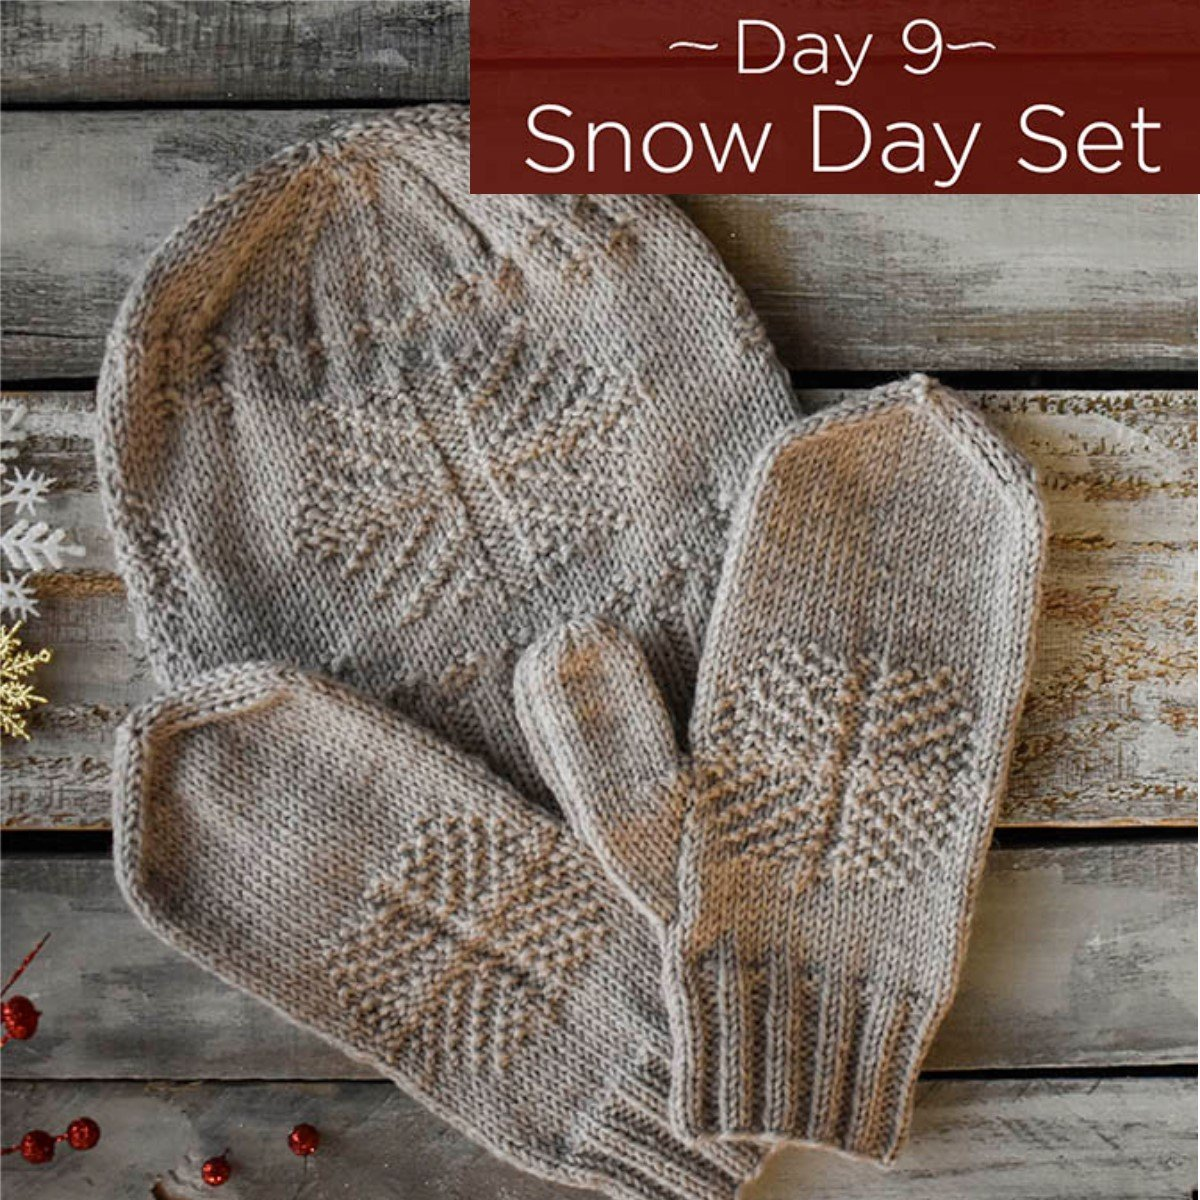 Snow Day Set Kit - Day 9